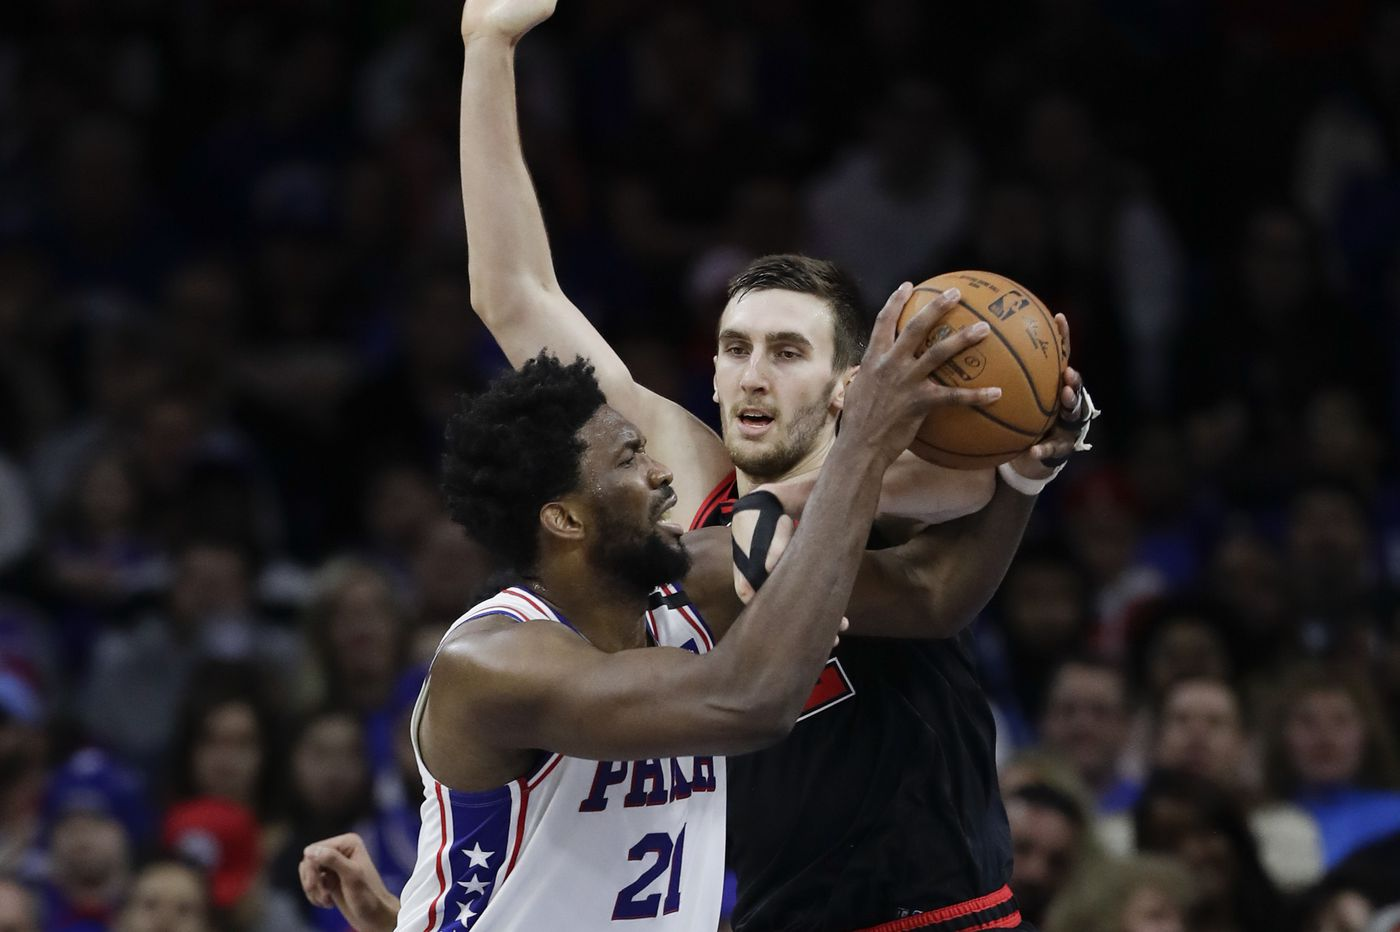 Sixers podcast: Dissecting Sunday's victory, fitting in new additions, and significance of back-to-back wins